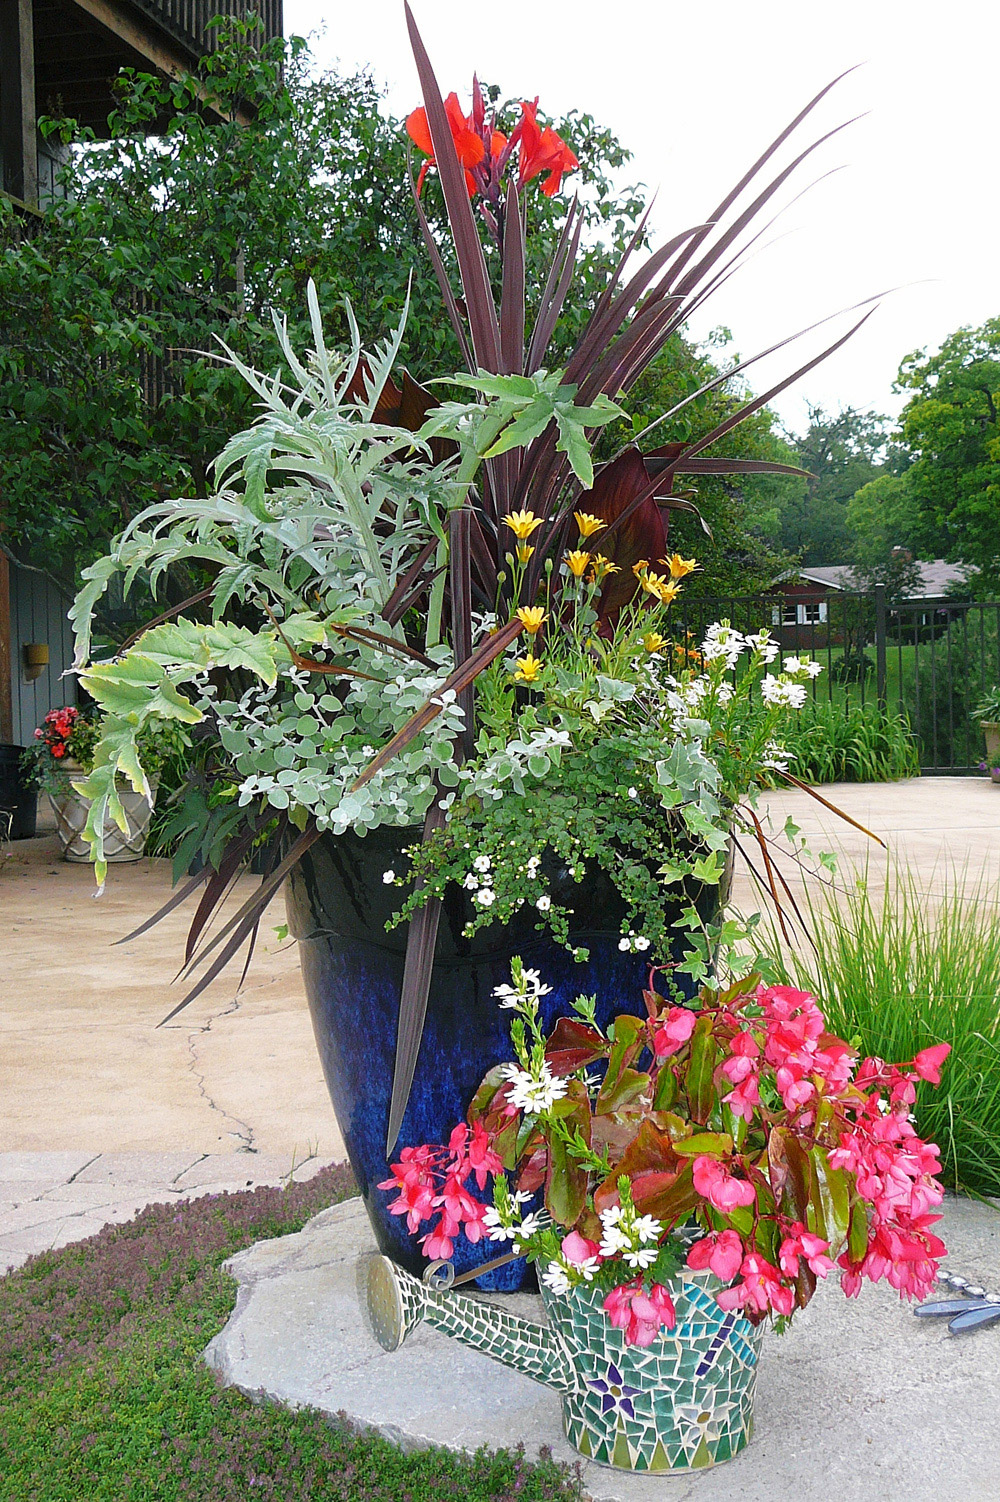 Mixing different textures and colors adds interest to your garden